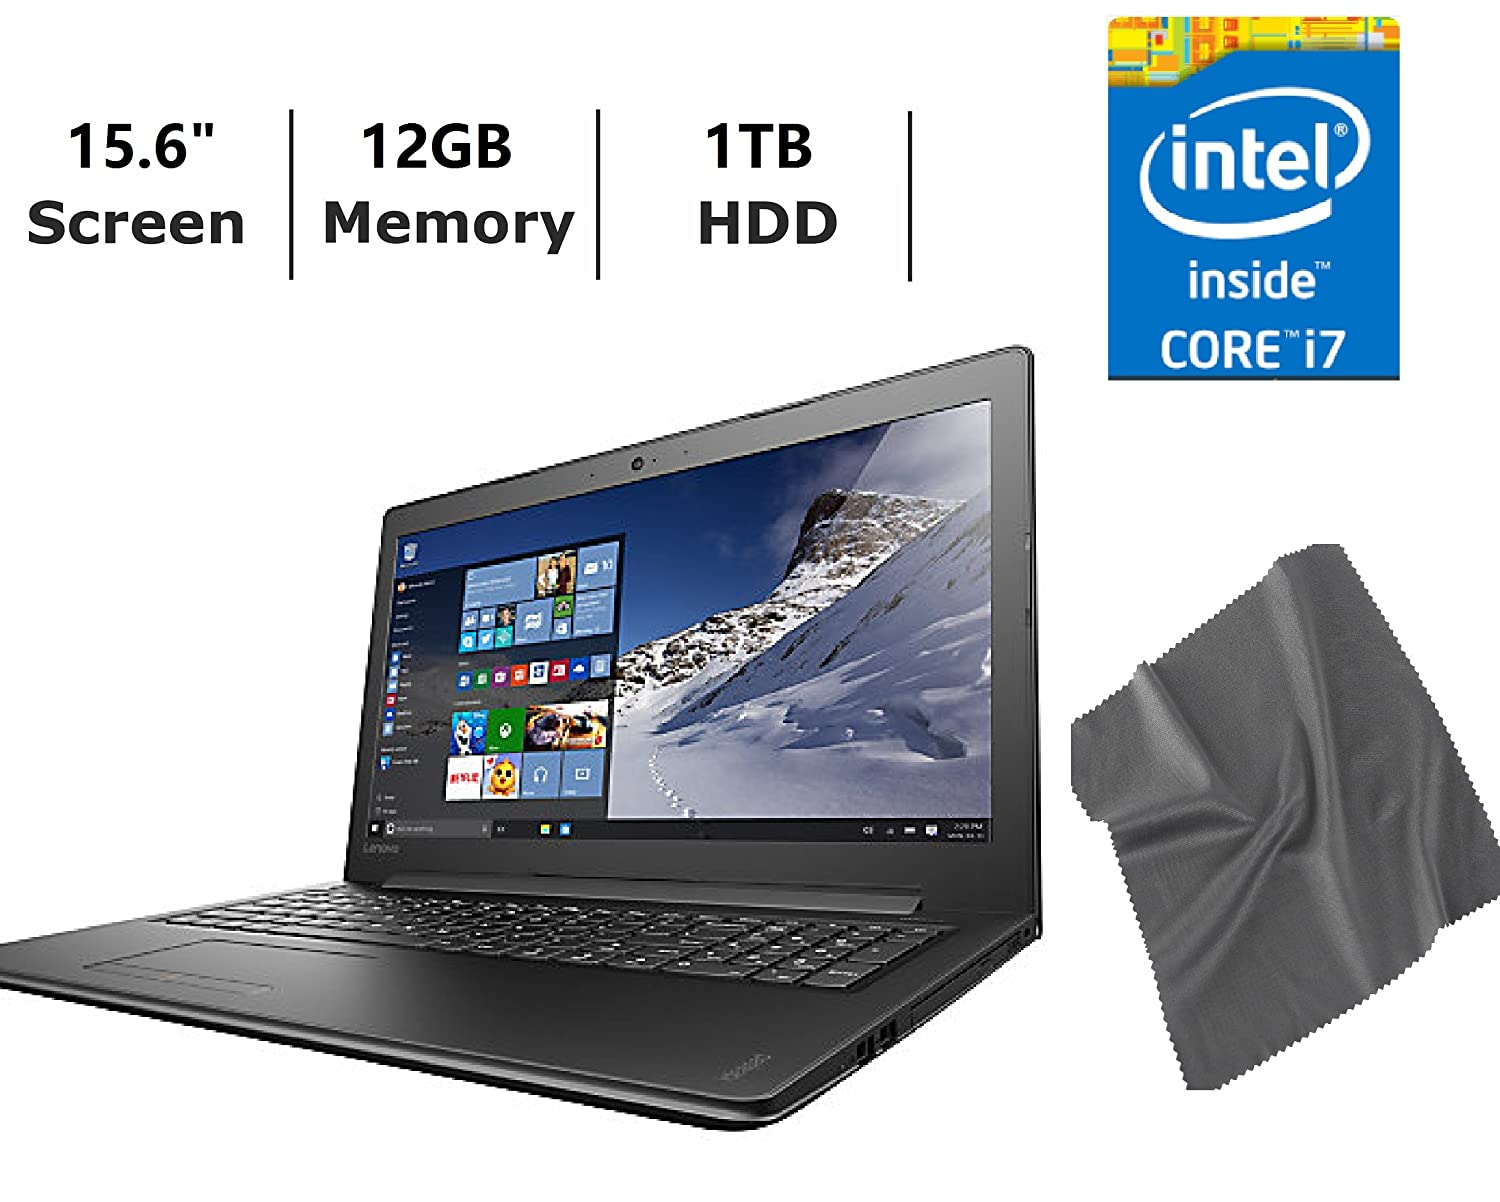 High Performance Laptops >> Lenovo Ideapad 15 6 High Performance Laptop Bundle Intel Core I7 2 50 Ghz 12gb Ddr3l 1tb Hdd Dvd Rw Drive Screen Cleaning Clothes Webcam